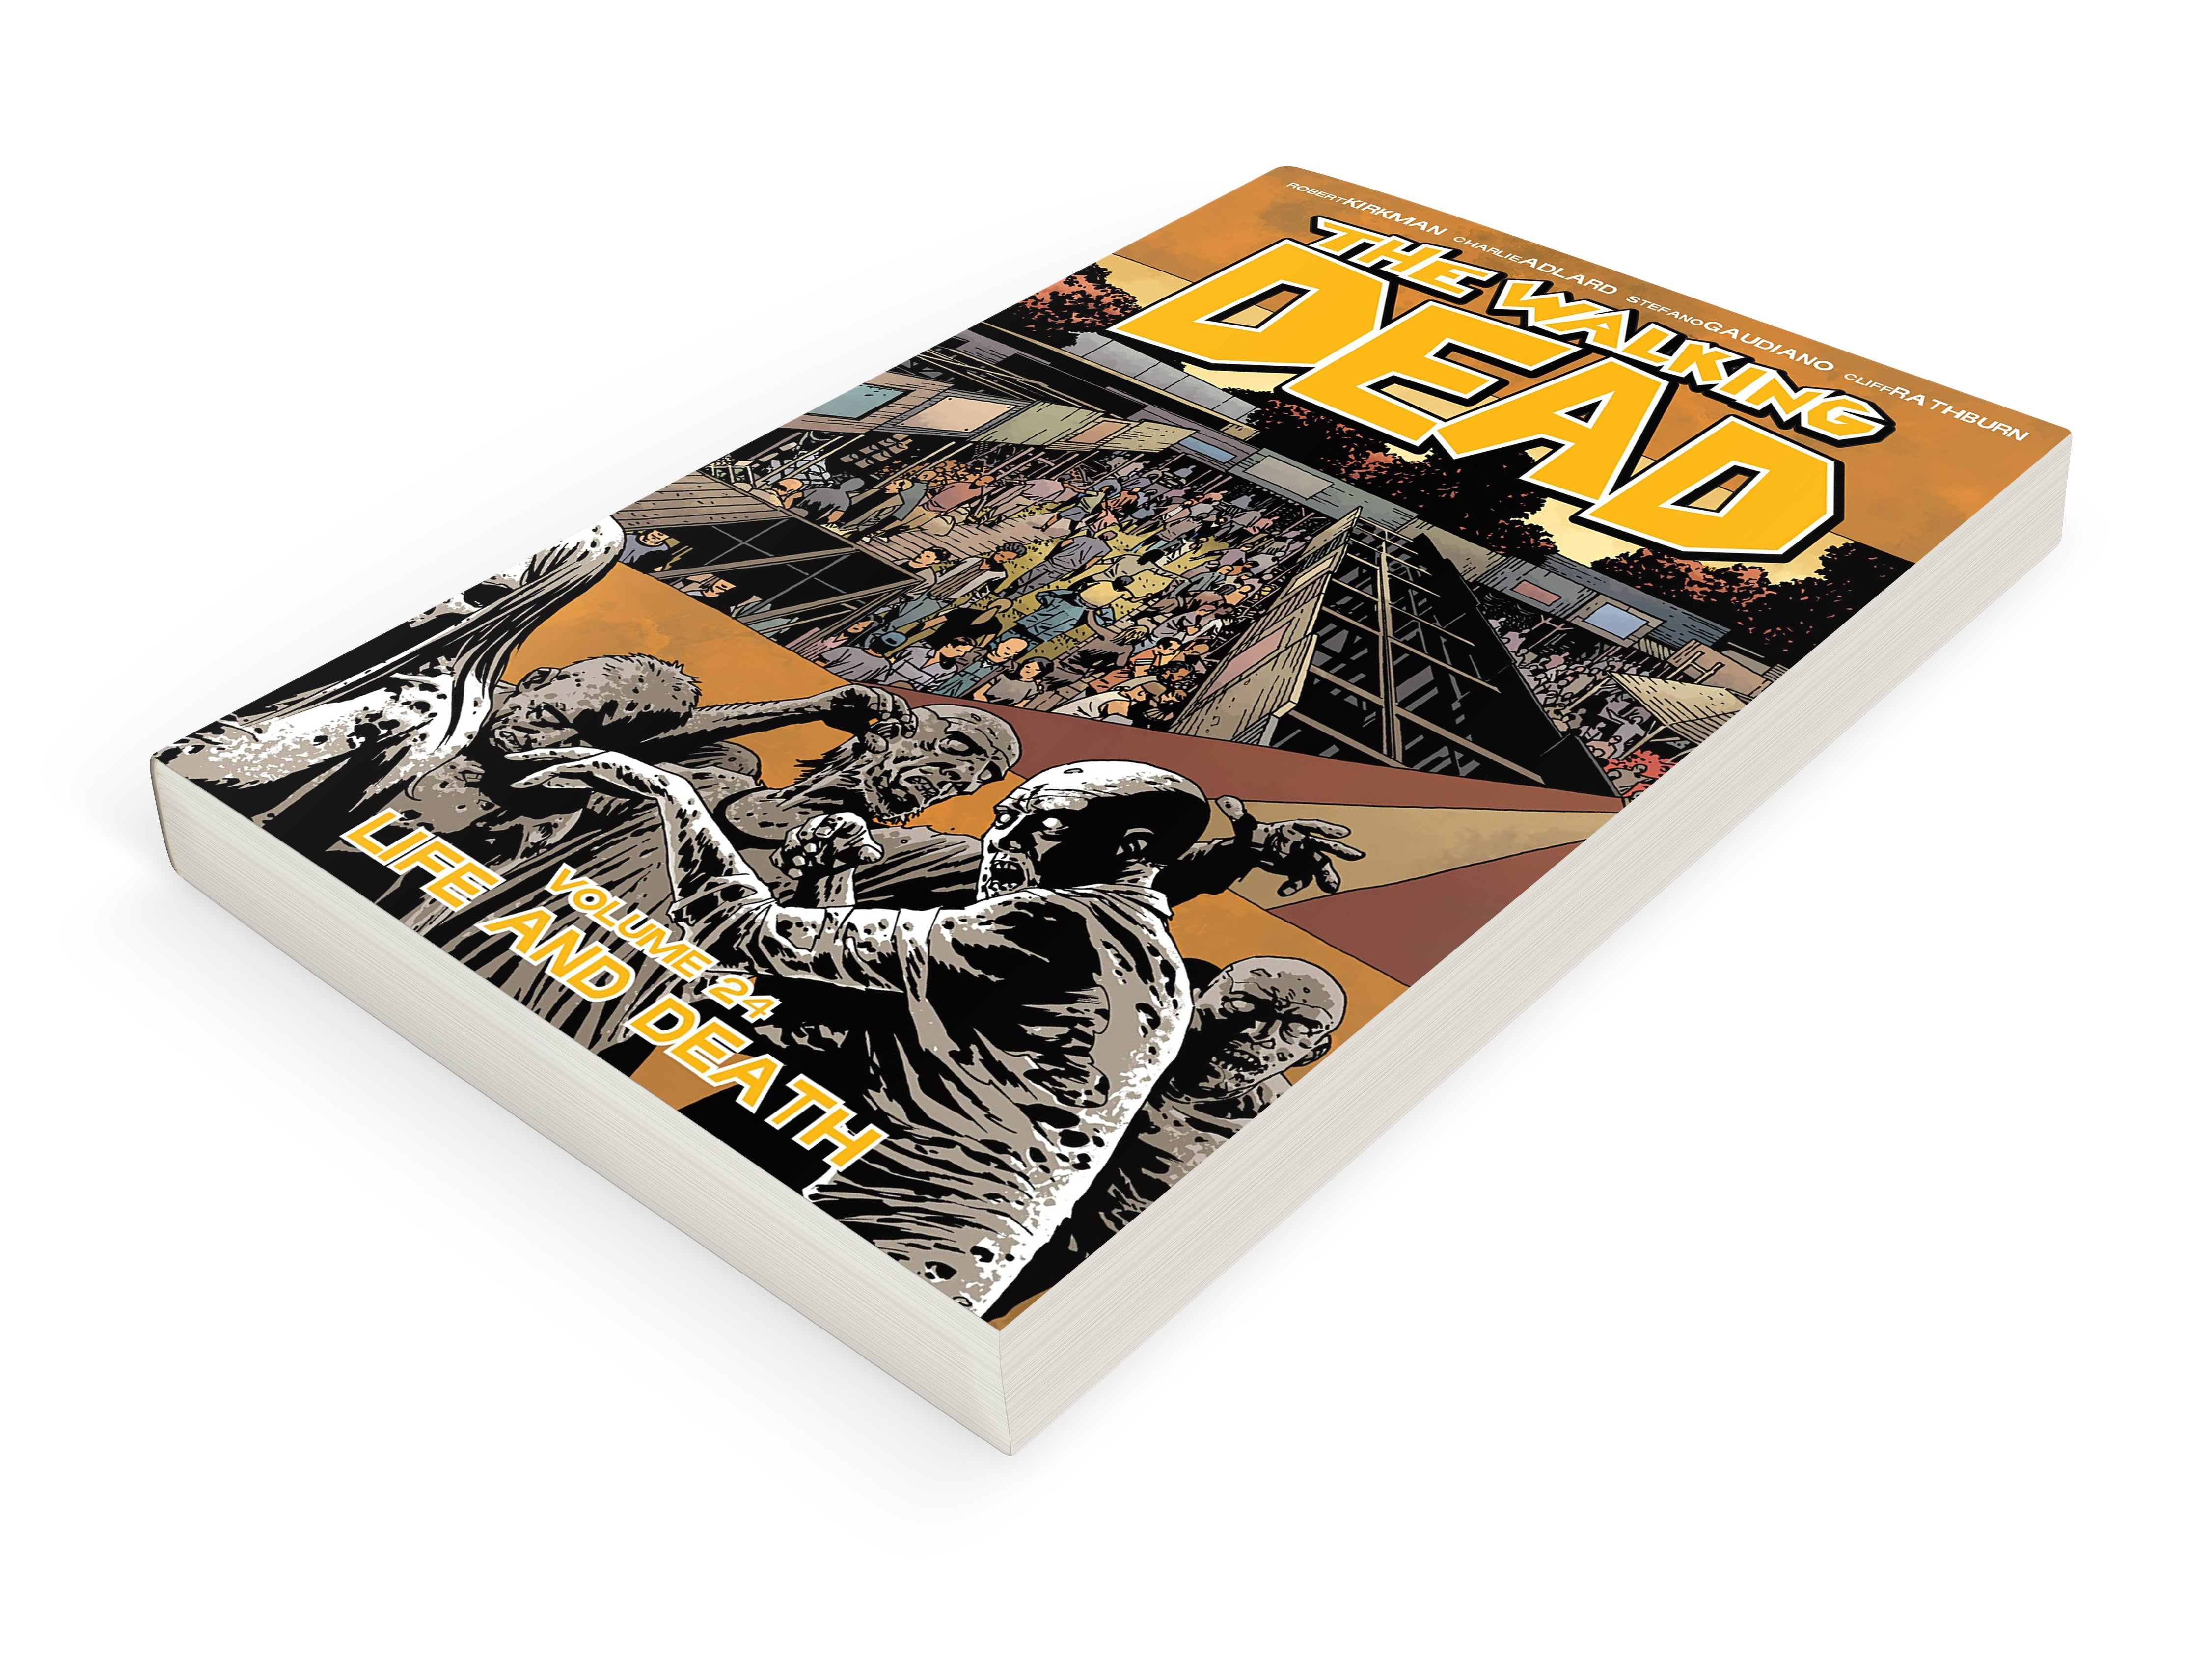 THE WALKING DEAD TPB 24: LIFE AND DEATH